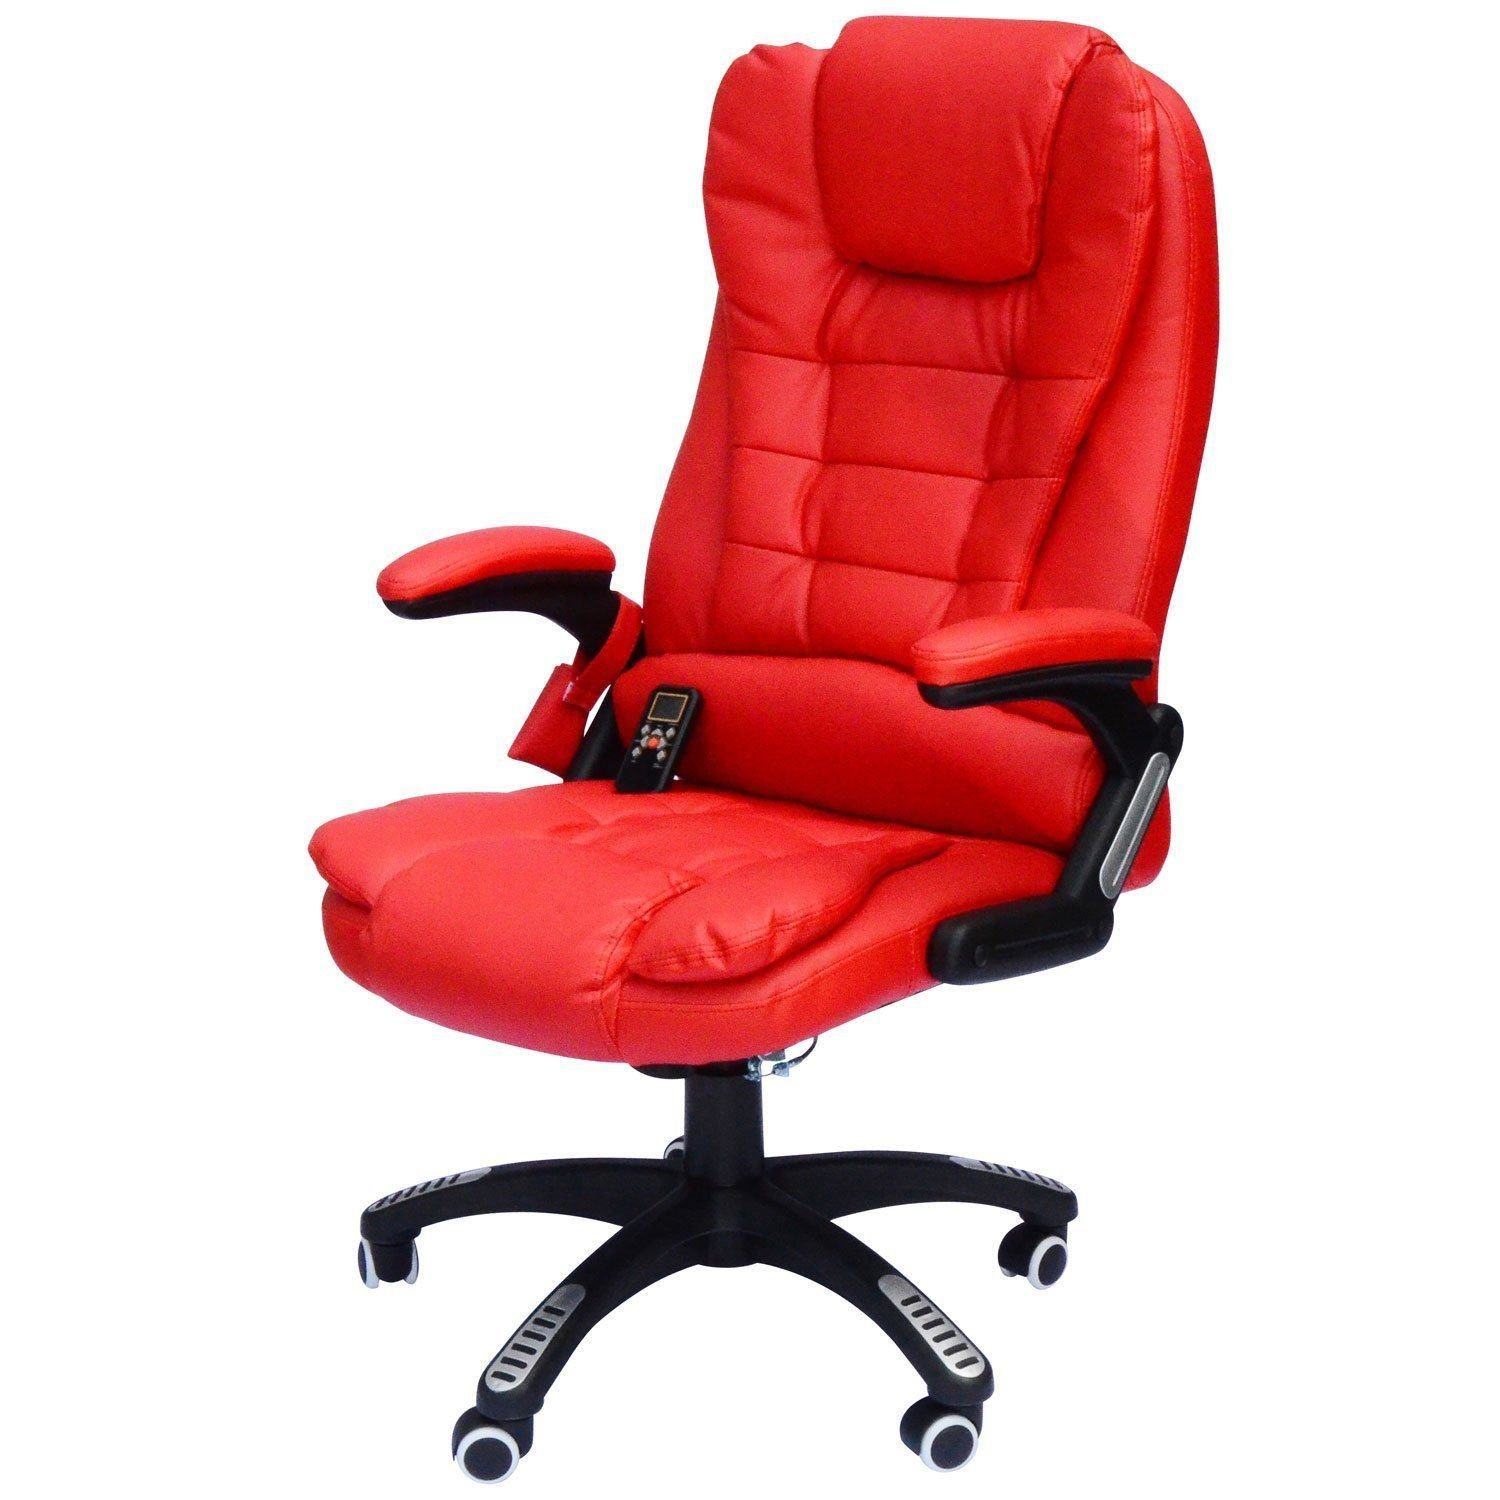 Red HomCom A2-0051 Heated Massage Executive Office Chair High Back Swivel Leather Adjustable Vibrating Furniture, Black